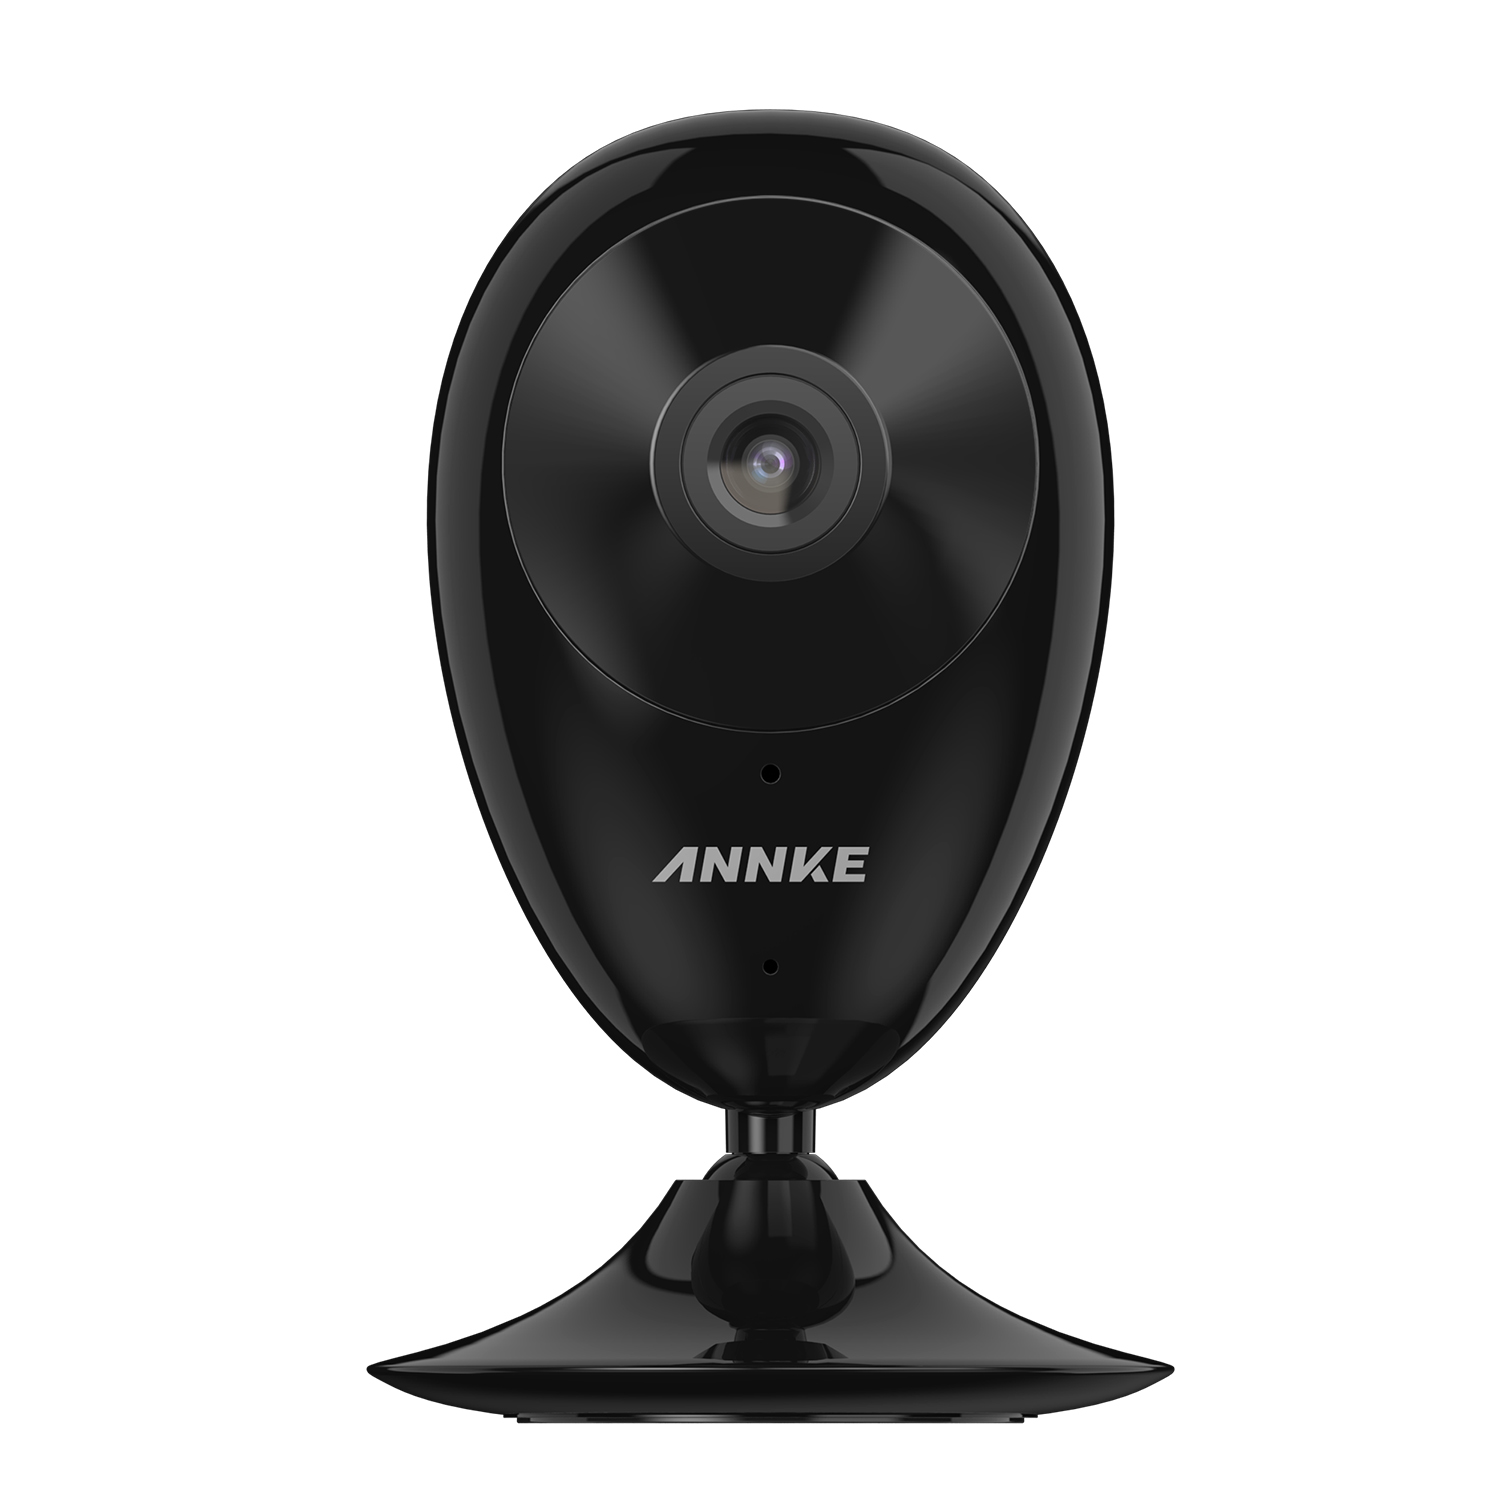 ANNKE HD 1080P WiFi Video Monitoring Security Wireless IP Camera with Pan/Tilt, Two-Way Audio, Plug & Play Setup, Optional Cloud Recording